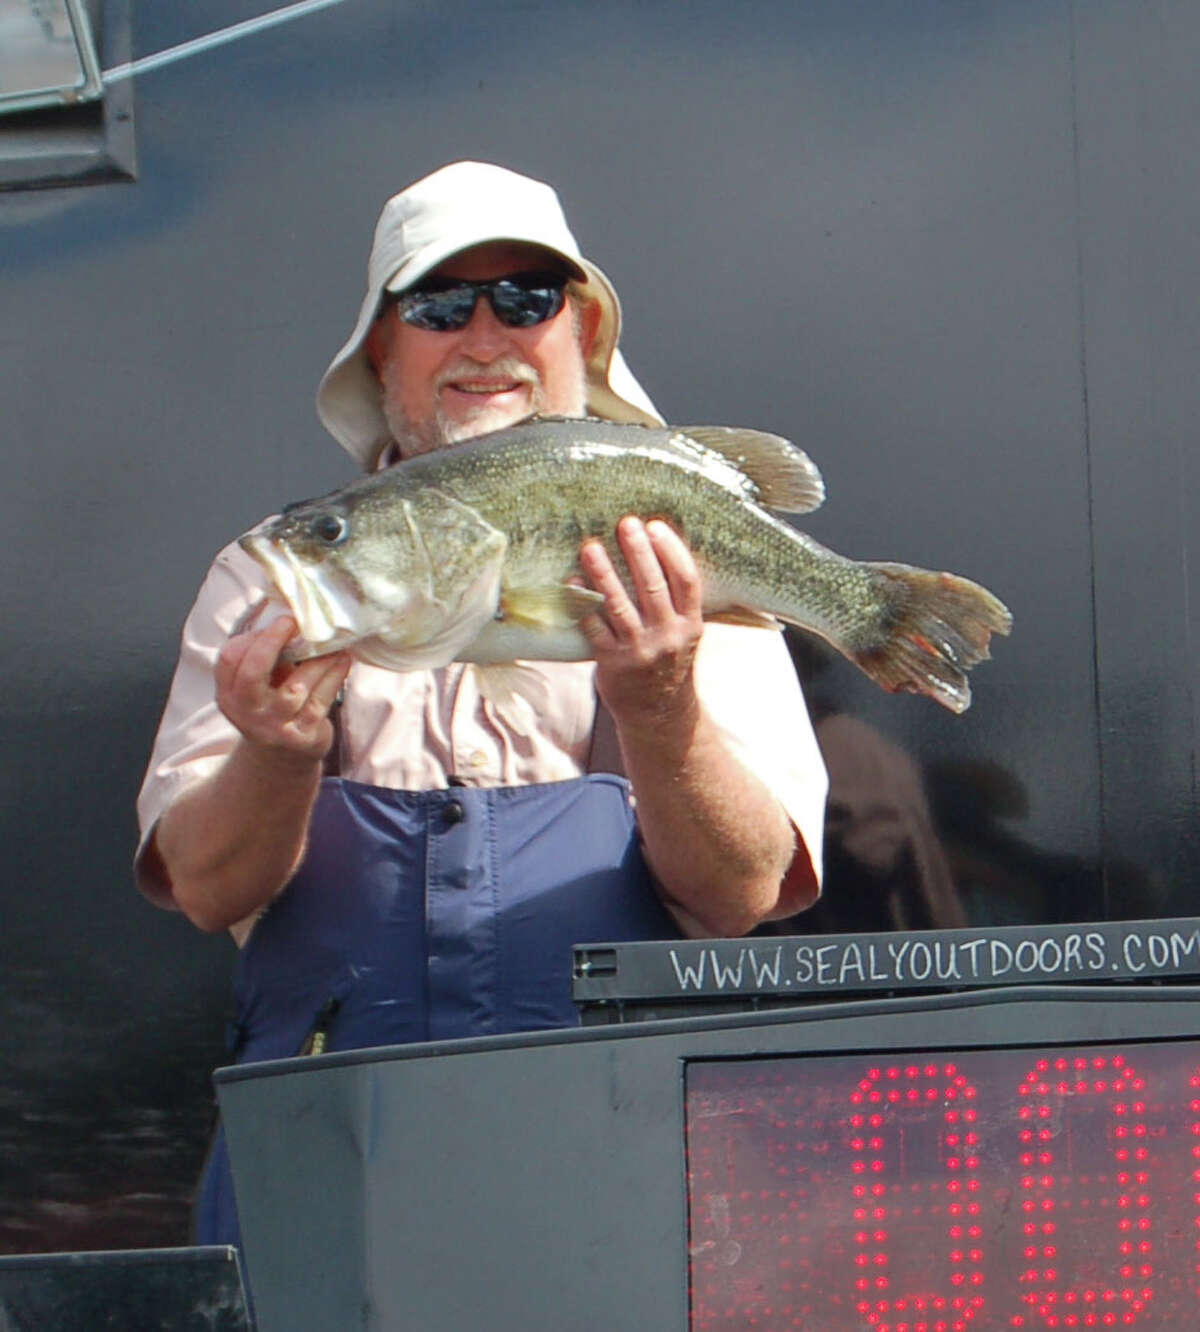 Lubbock, TX angler Ronnie Sharp leads the pack on Day 1 with his 8.72 lb catch